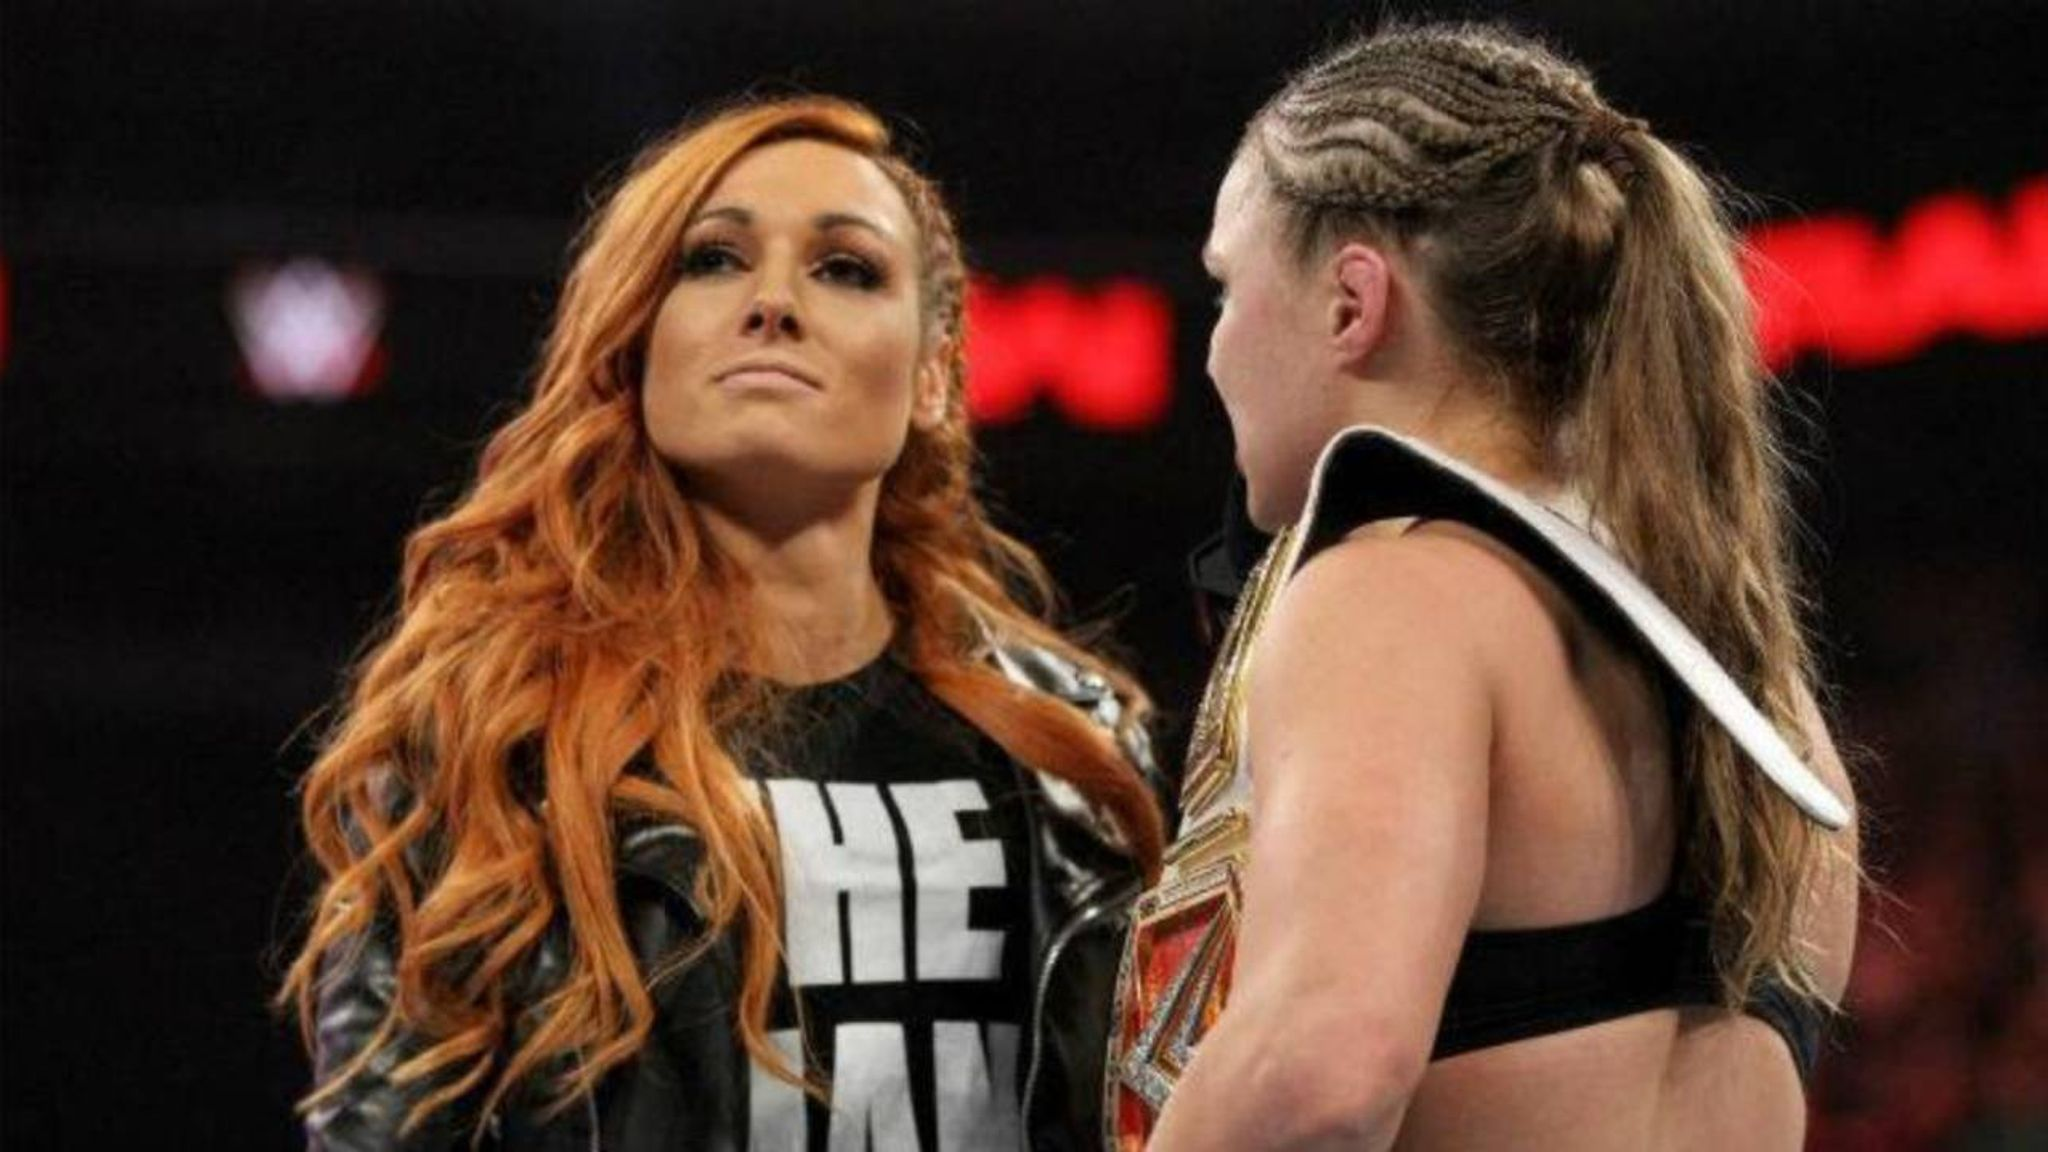 Becky Lynch has 'unfinished business' with Ronda Rousey